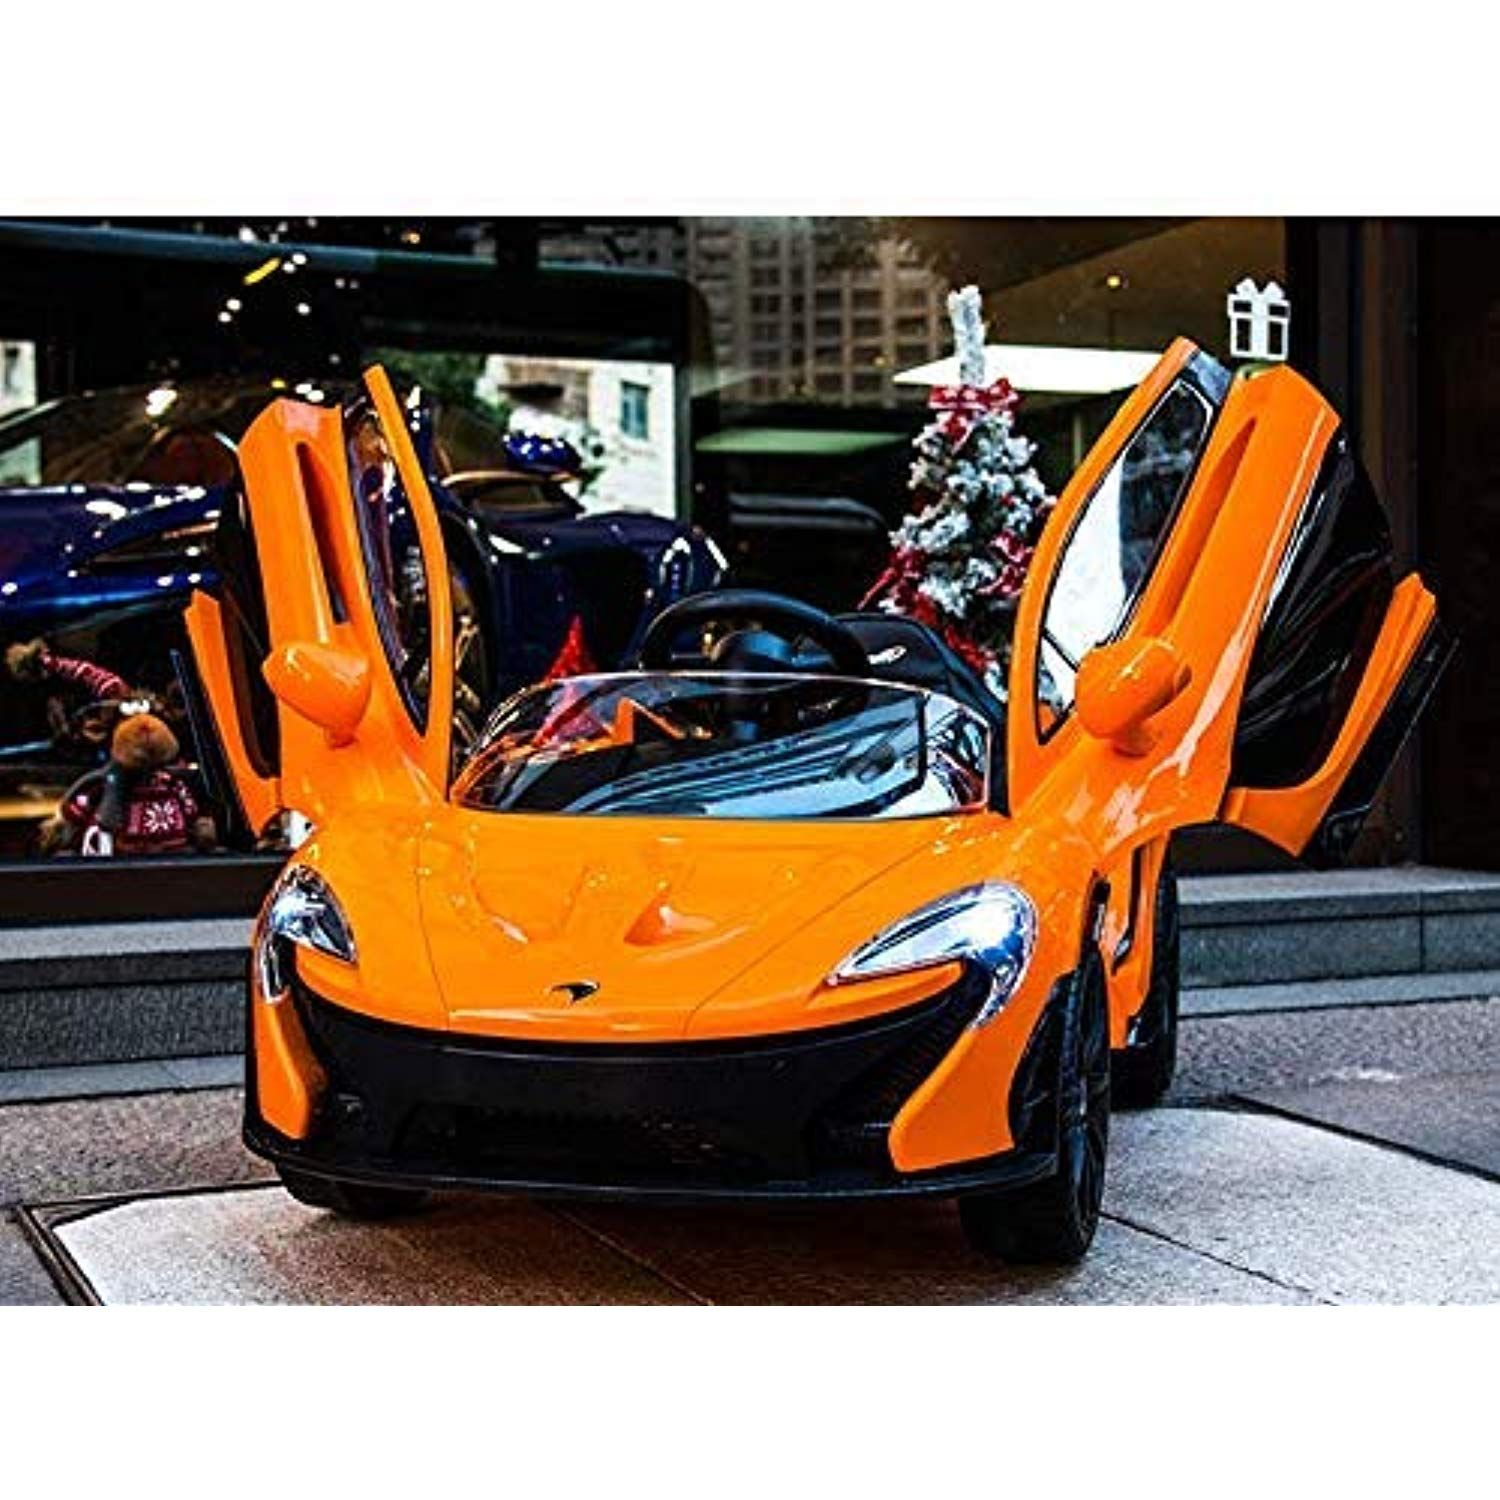 Official Supercar Mclaren Kids Ride On Car 12v Battery Powered With Rc Doors Music Lights You Can Get Additional Det Kids Ride On Super Cars Ride On Toys